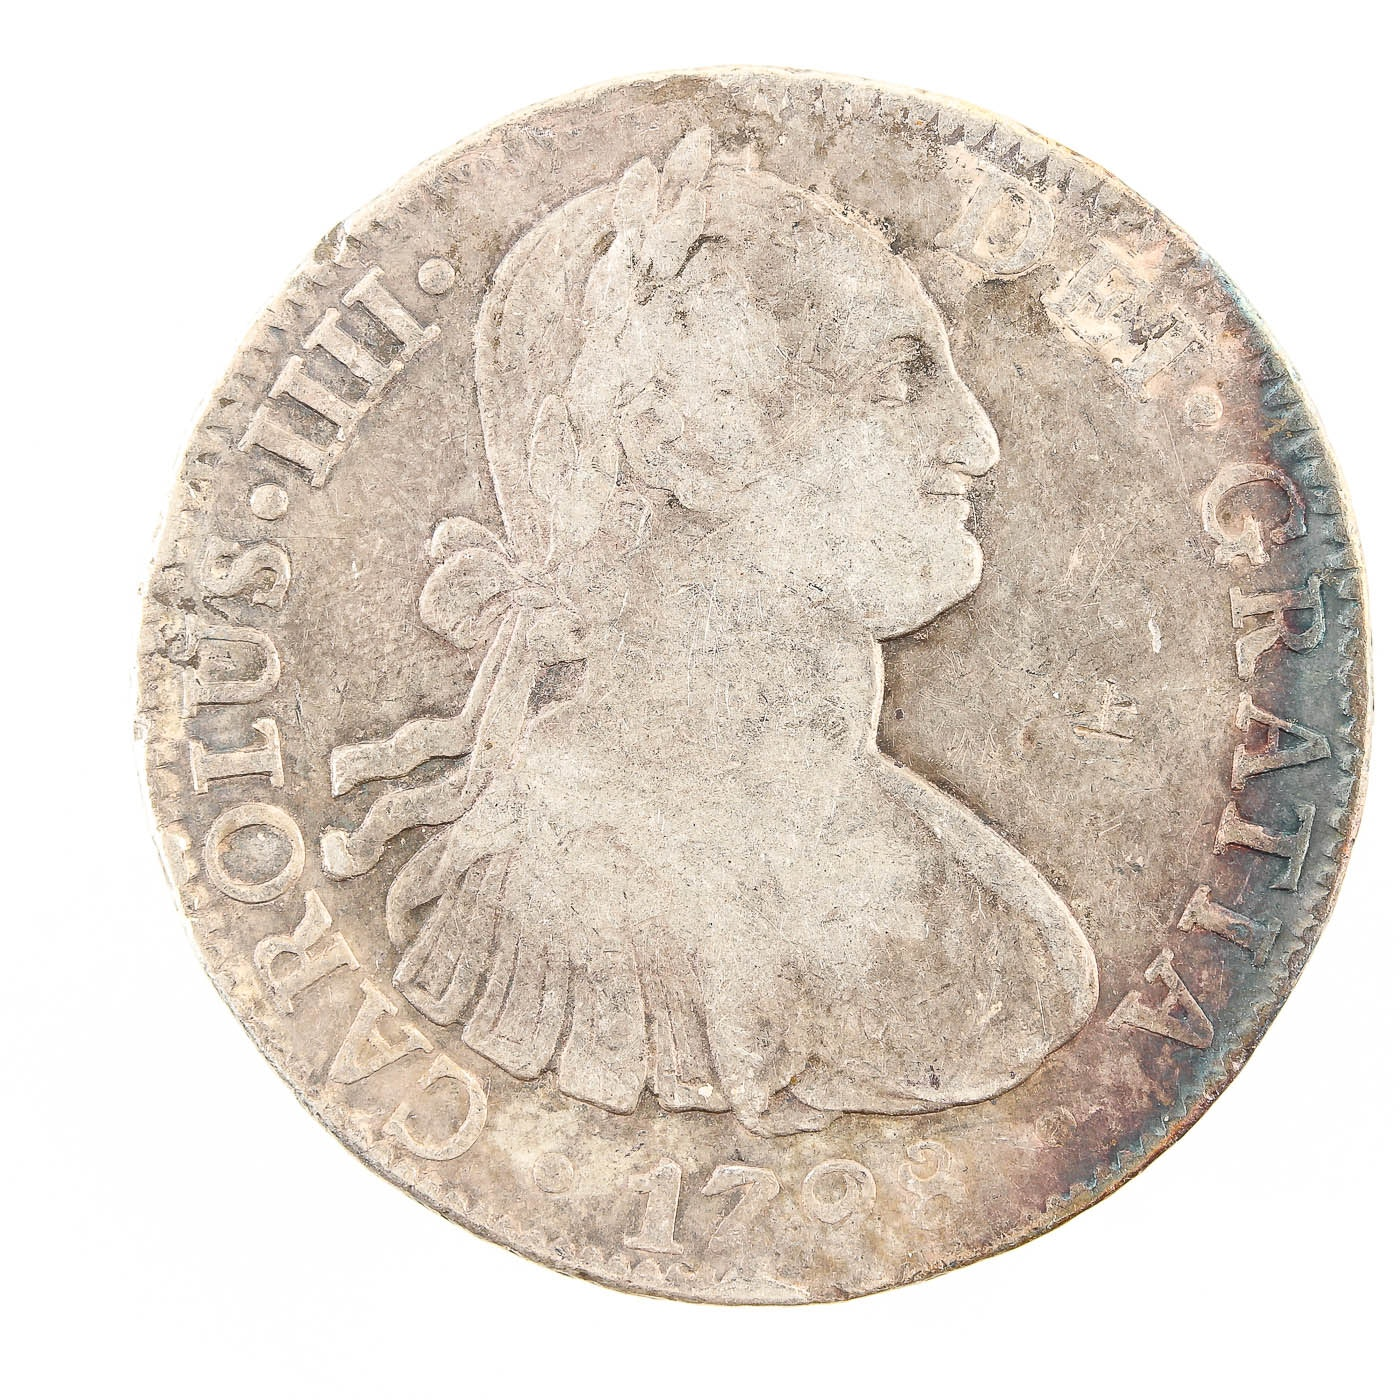 1798 Spanish Colonial 8 Reales Silver Coin